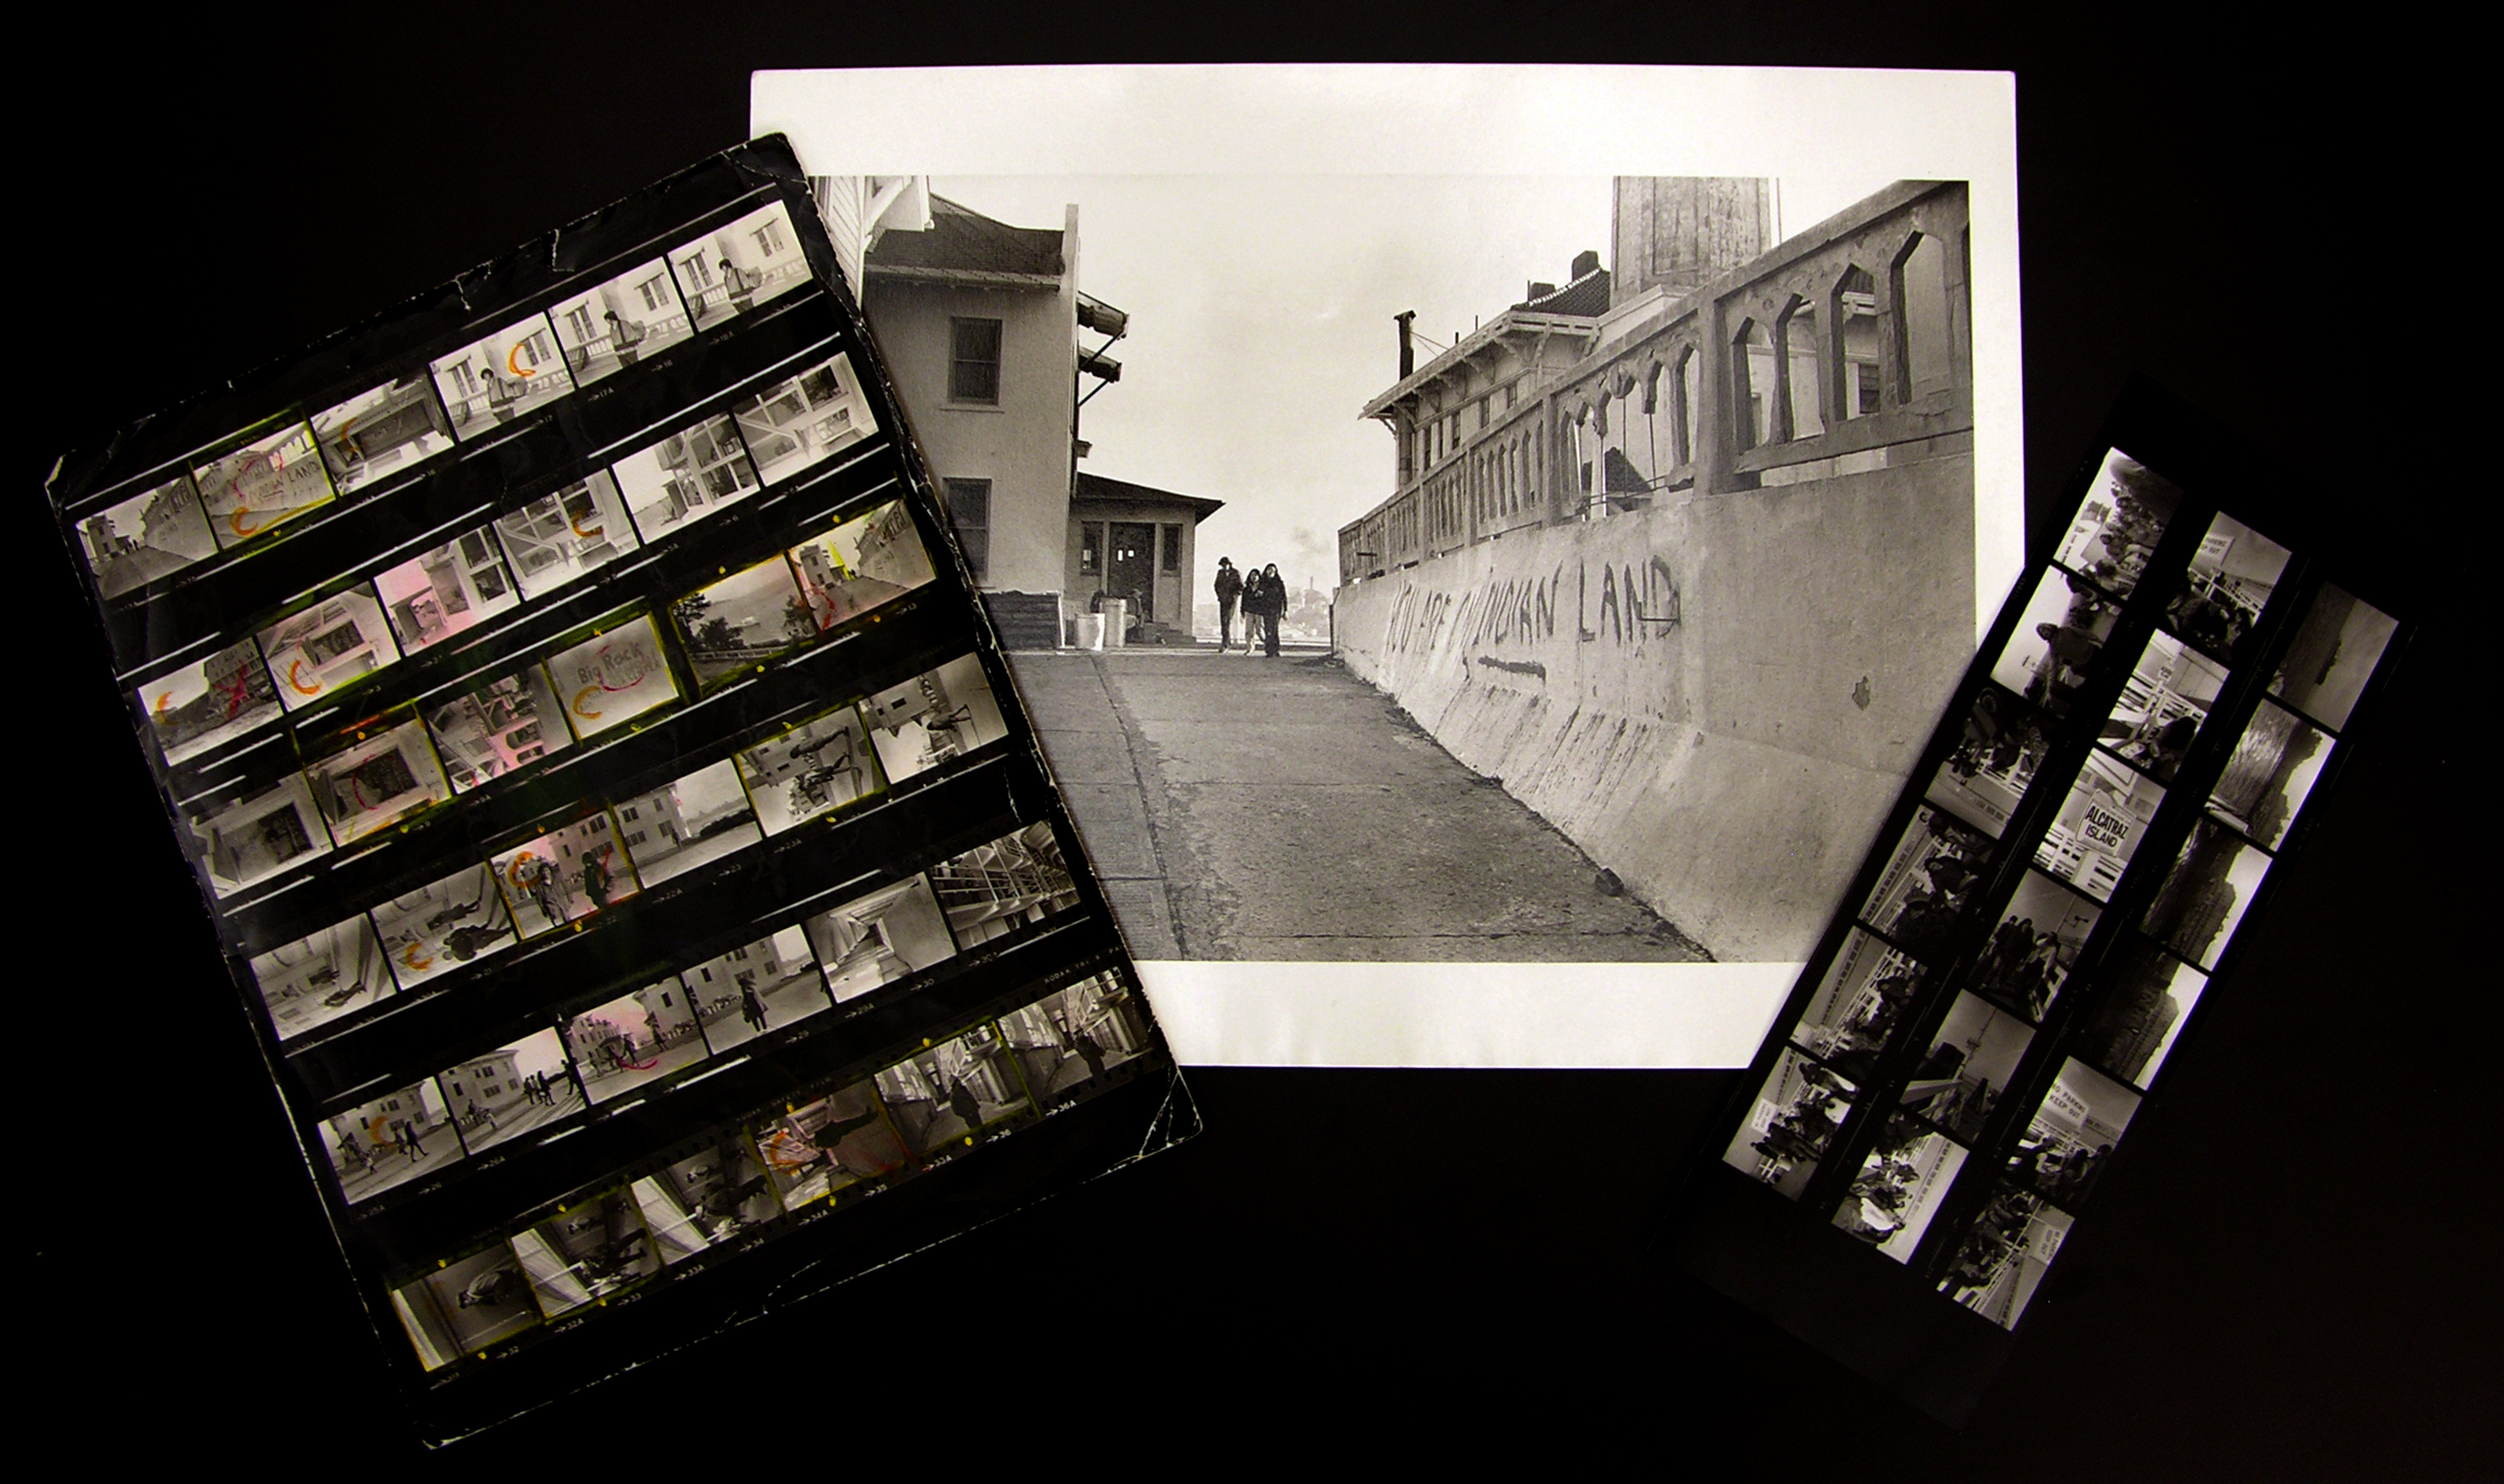 Contact sheets of the Alcatraz Occupation